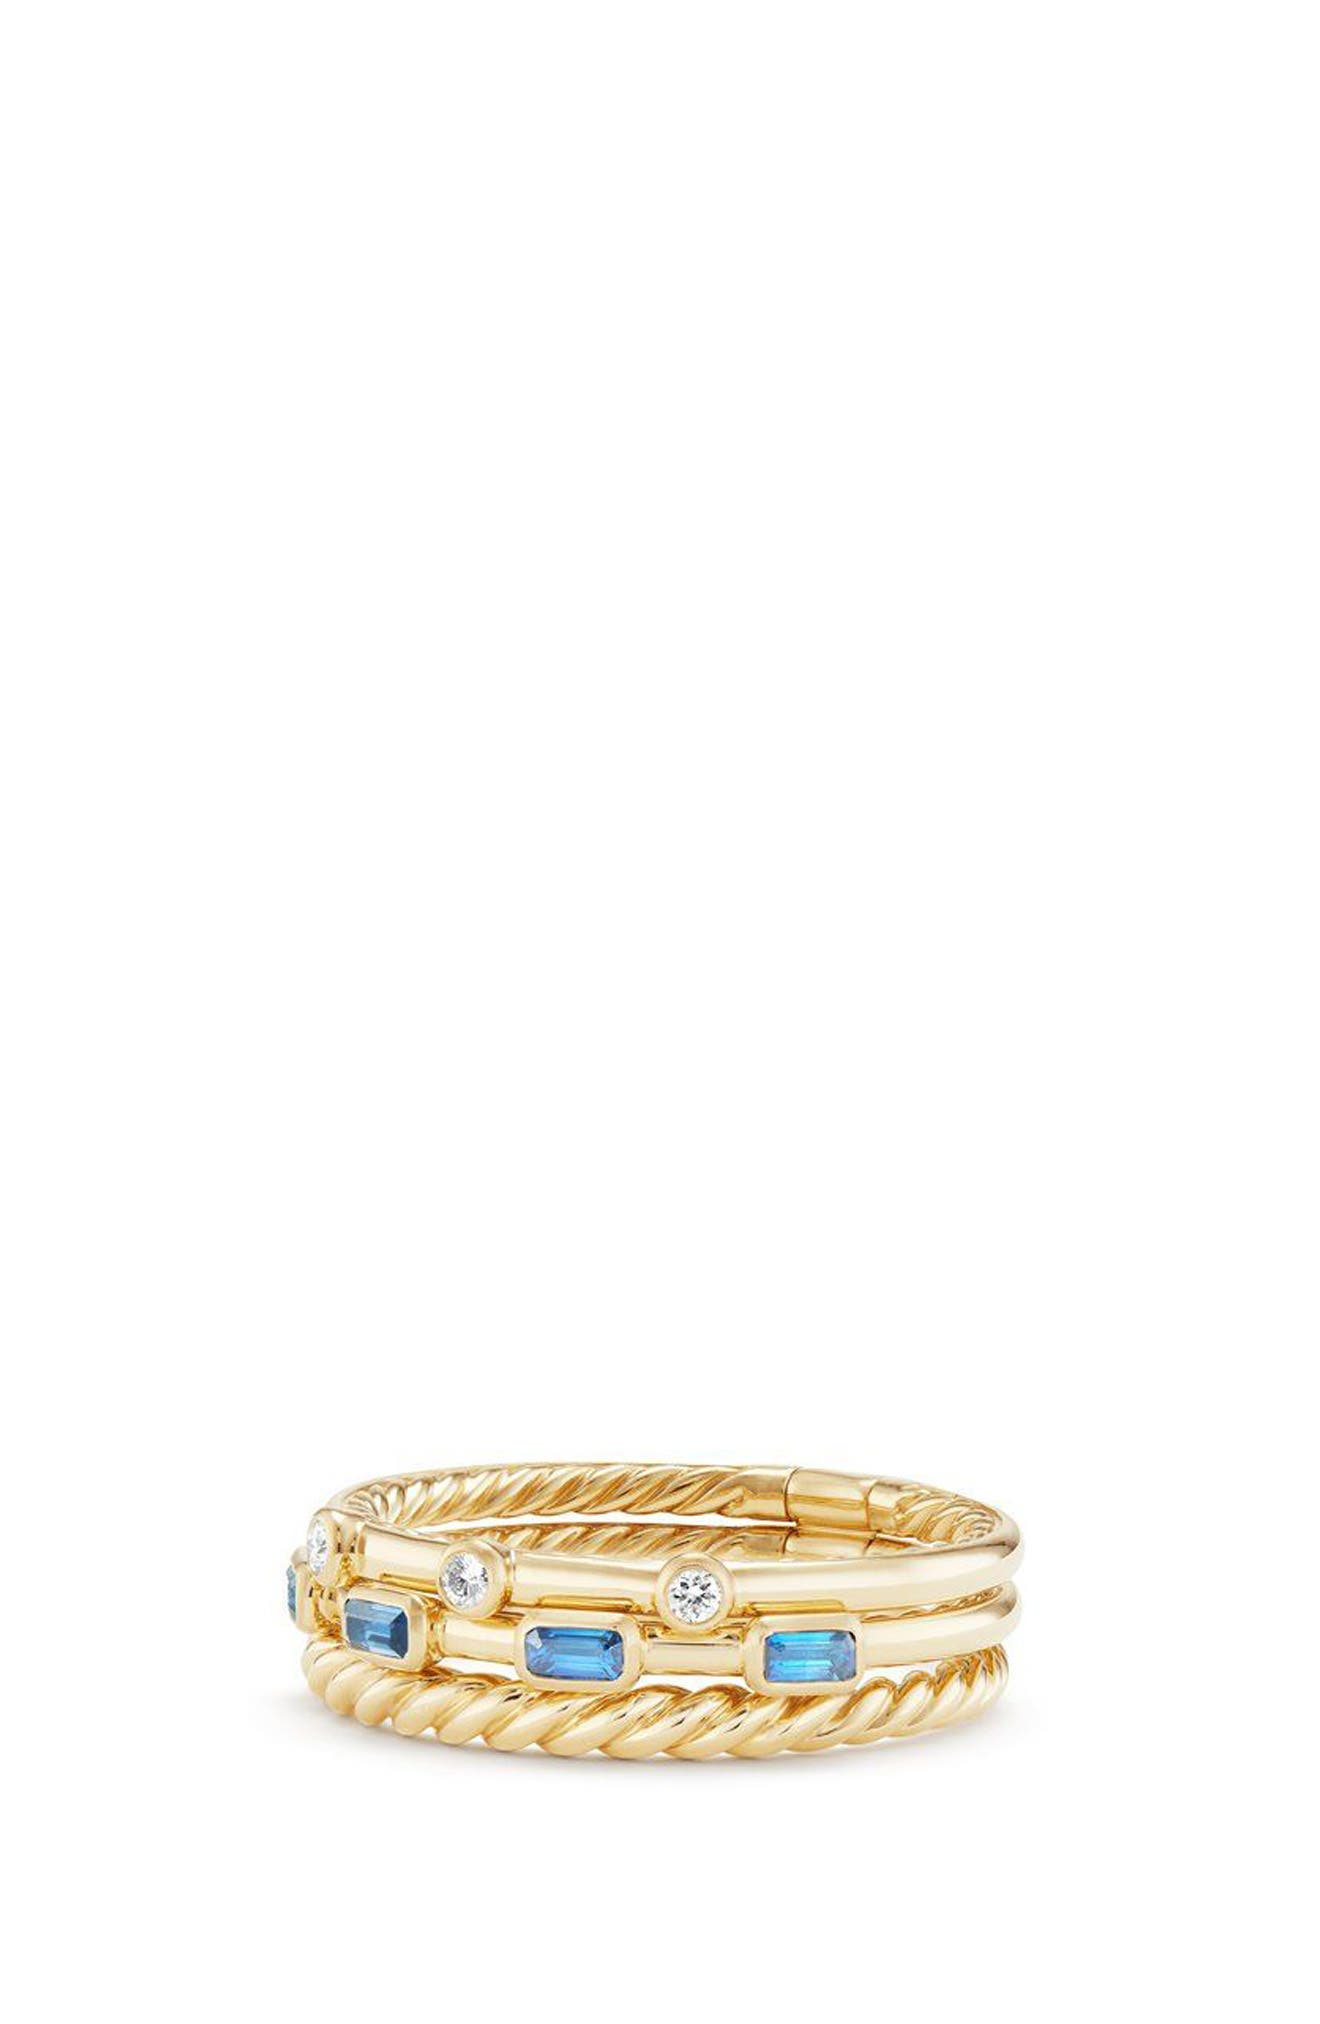 DAVID YURMAN,                             Novella 3-Row Ring with Diamonds,                             Main thumbnail 1, color,                             GOLD/ DIAMOND/ BLUE SAPPHIRE